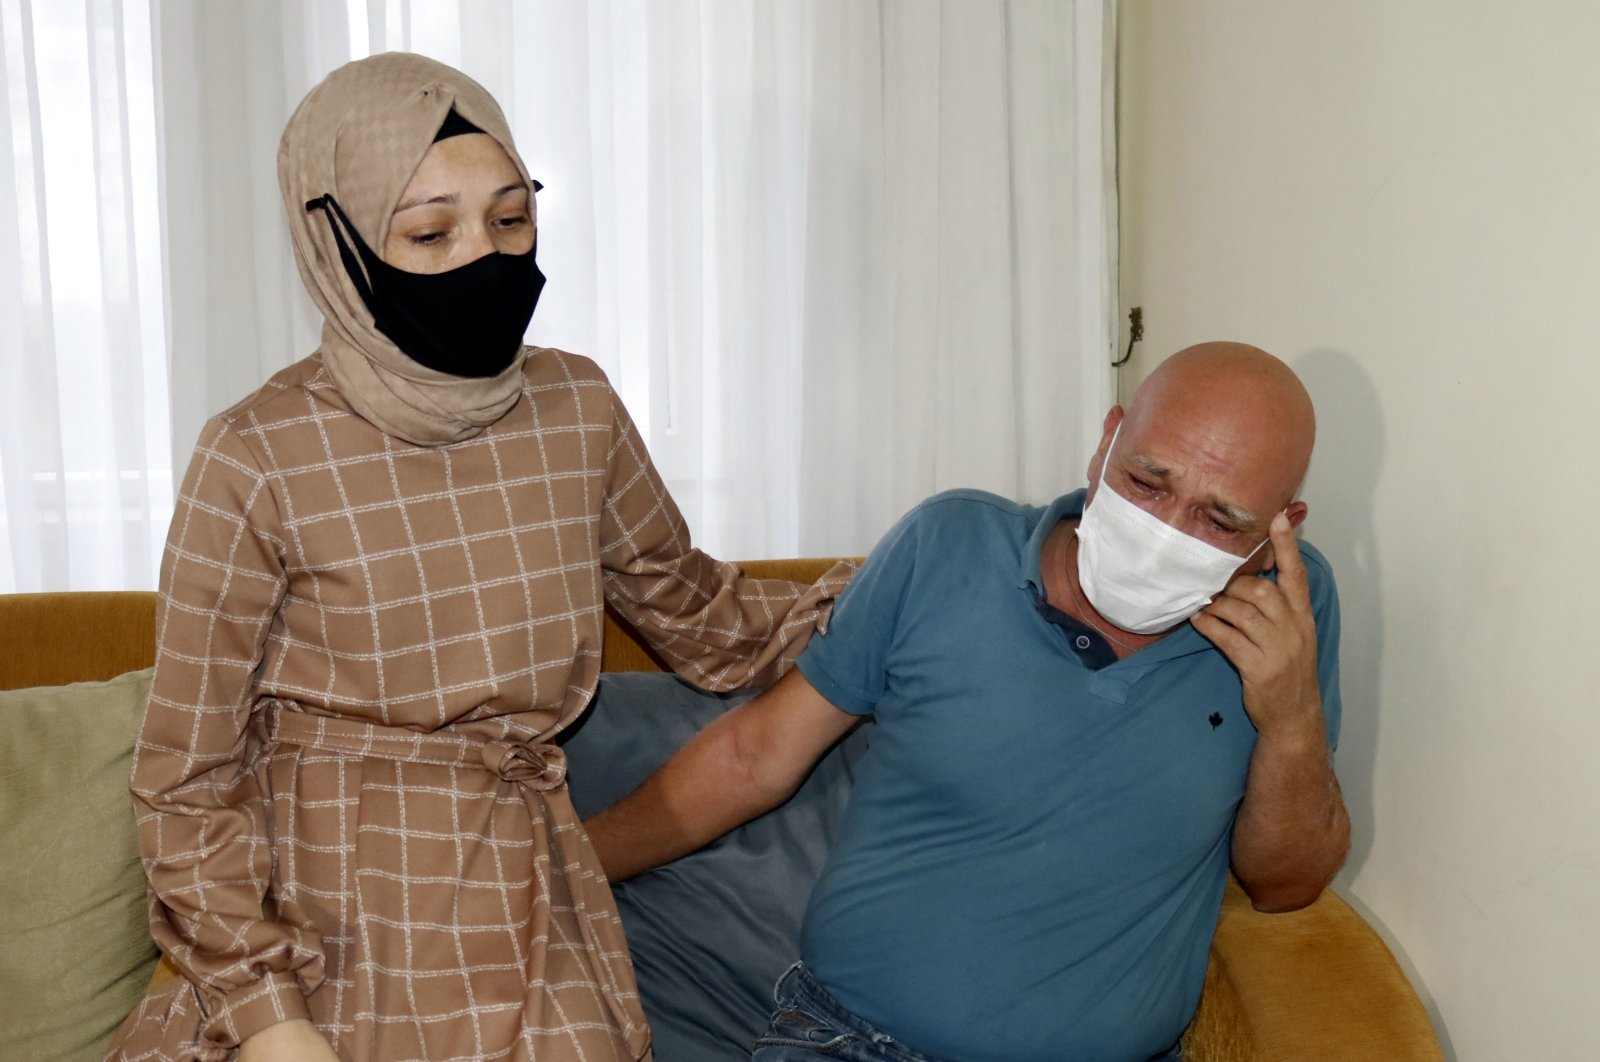 Melek Alkan with her father Metin Kabakçı who was poisoned by his son-in-law, in Antalya, southern Turkey, Dec. 1, 2020. (DHA PHOTO)